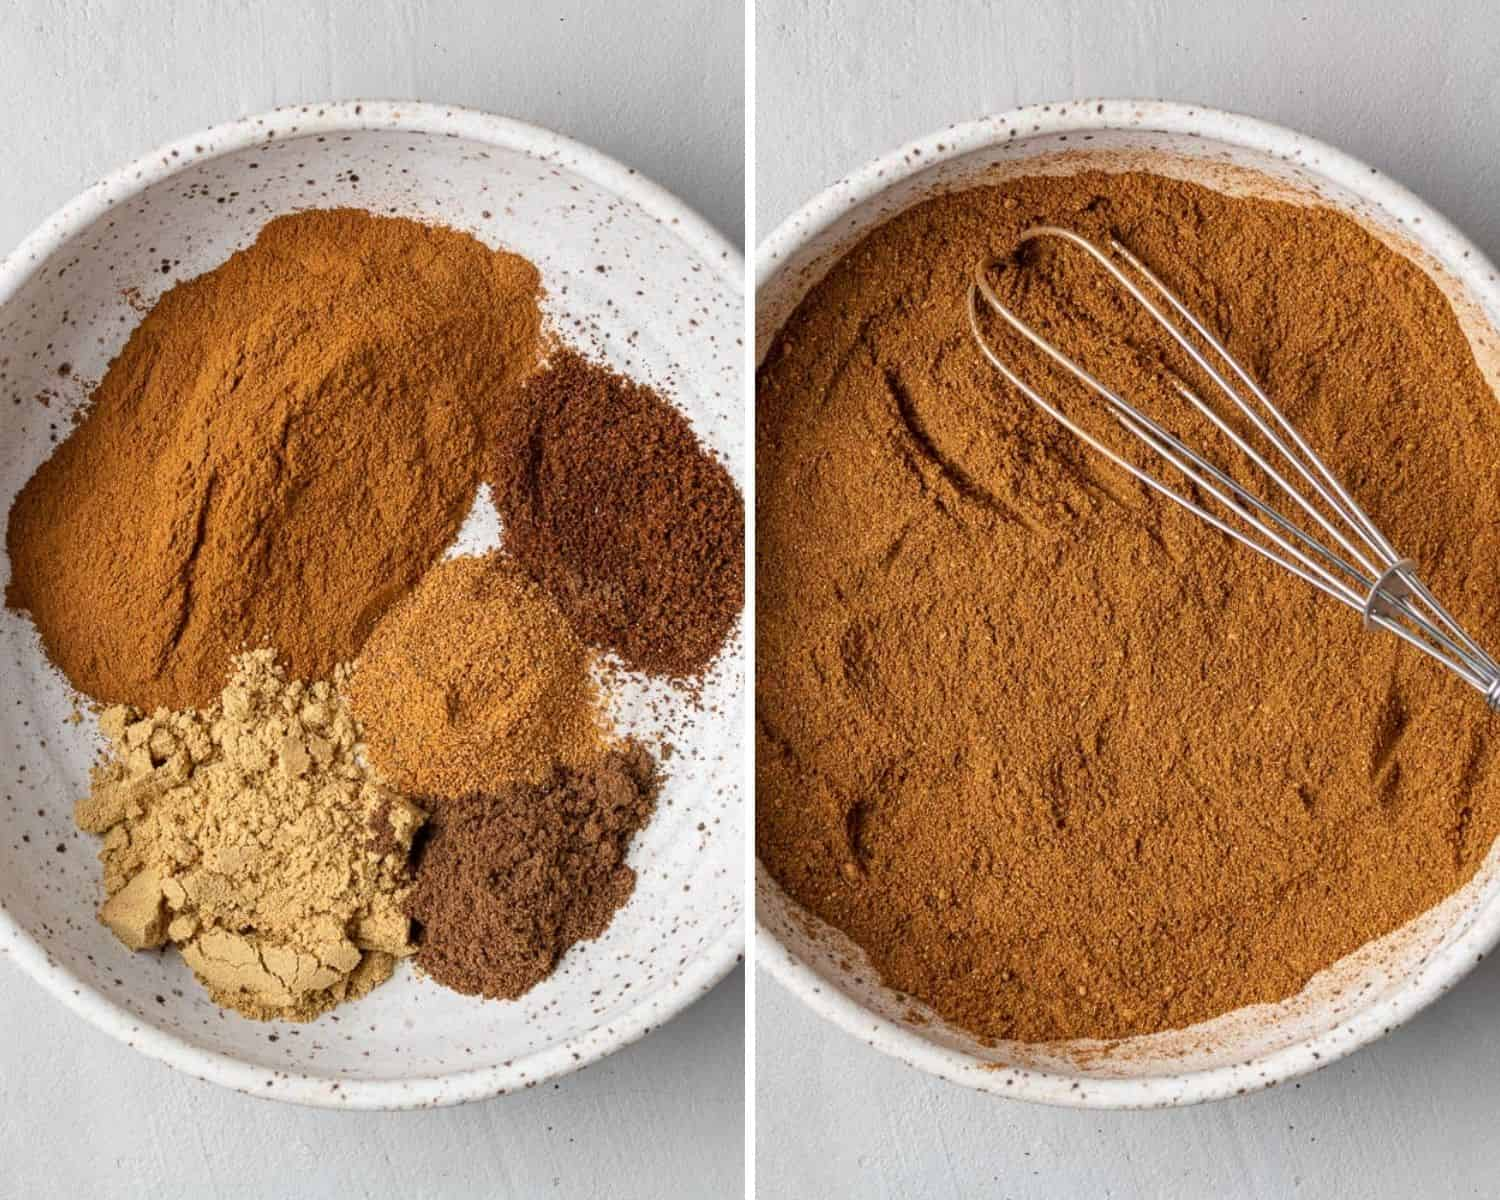 Pumpkin pie spice before and after being mixed.